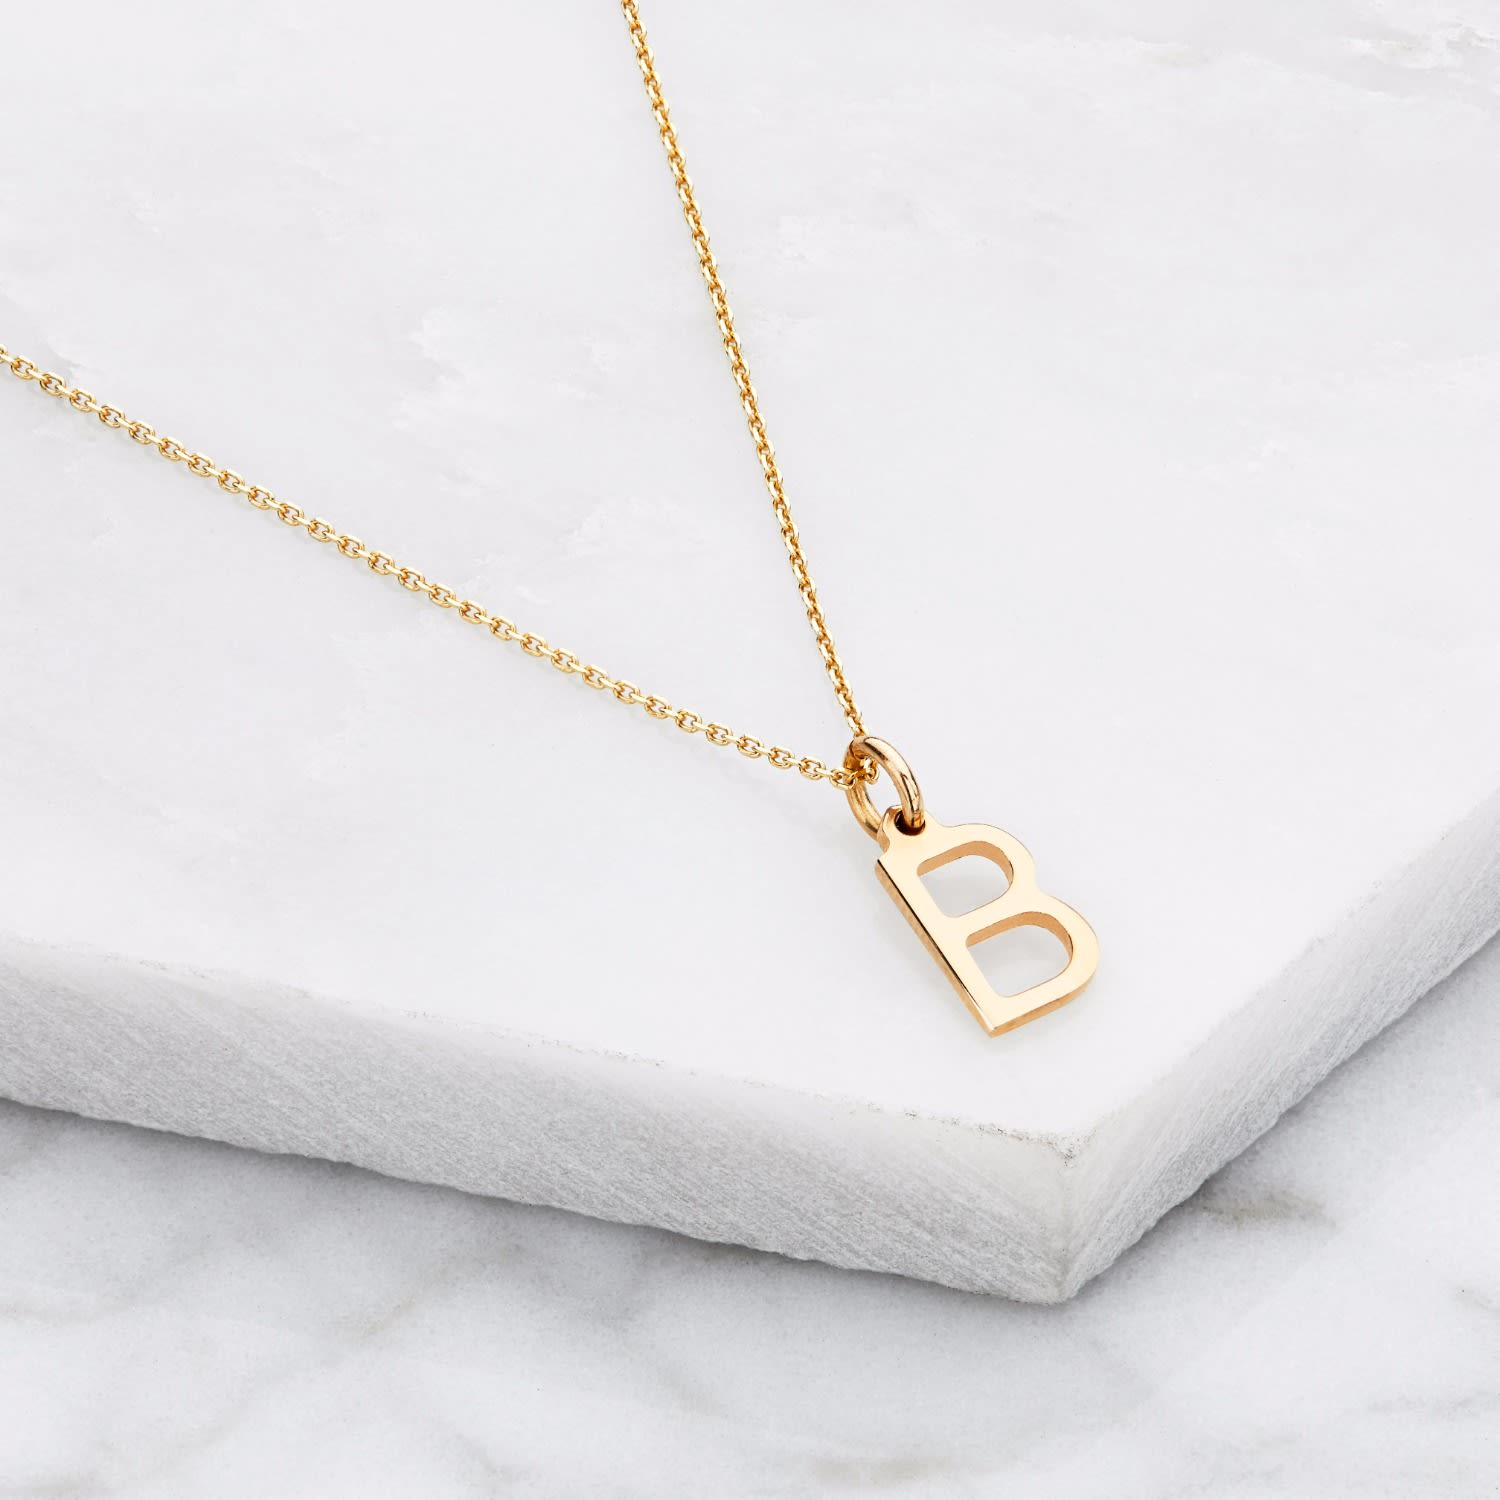 11a76956ac28f Solid Gold Small Initial Letter Charm Necklace by Lily & Roo